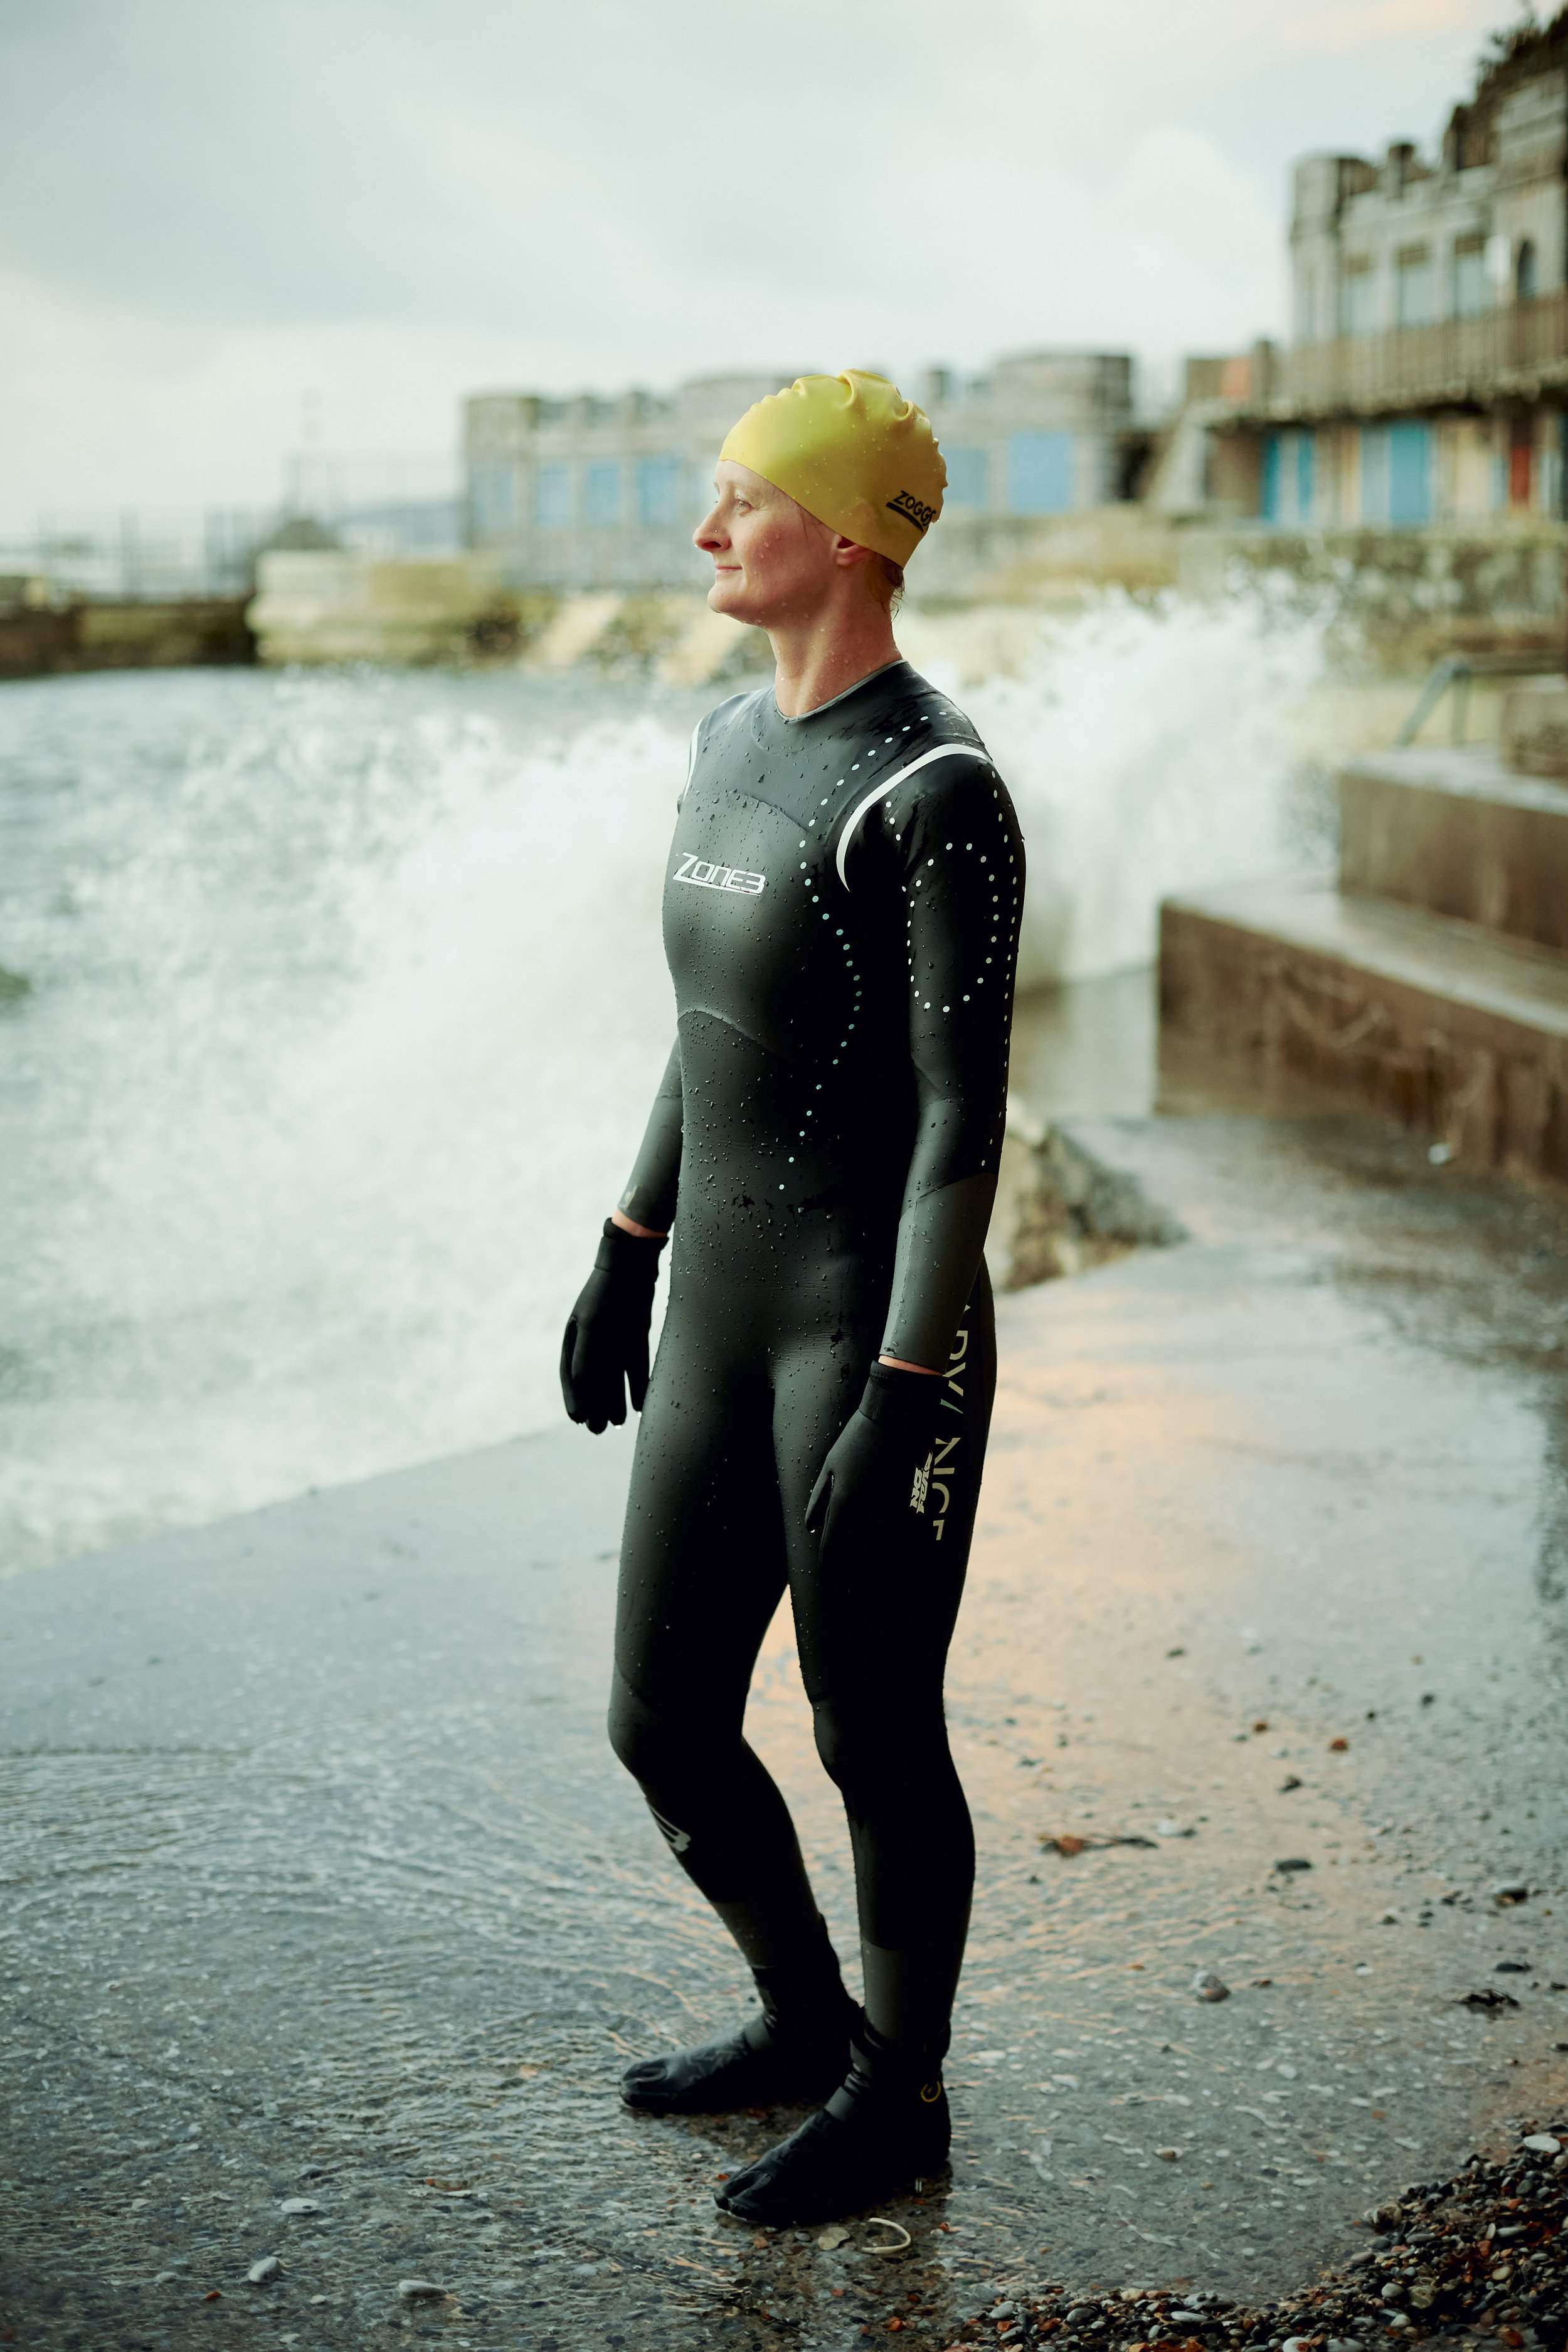 Holly - Sea Swimmer - Plymouth Hoe 2015